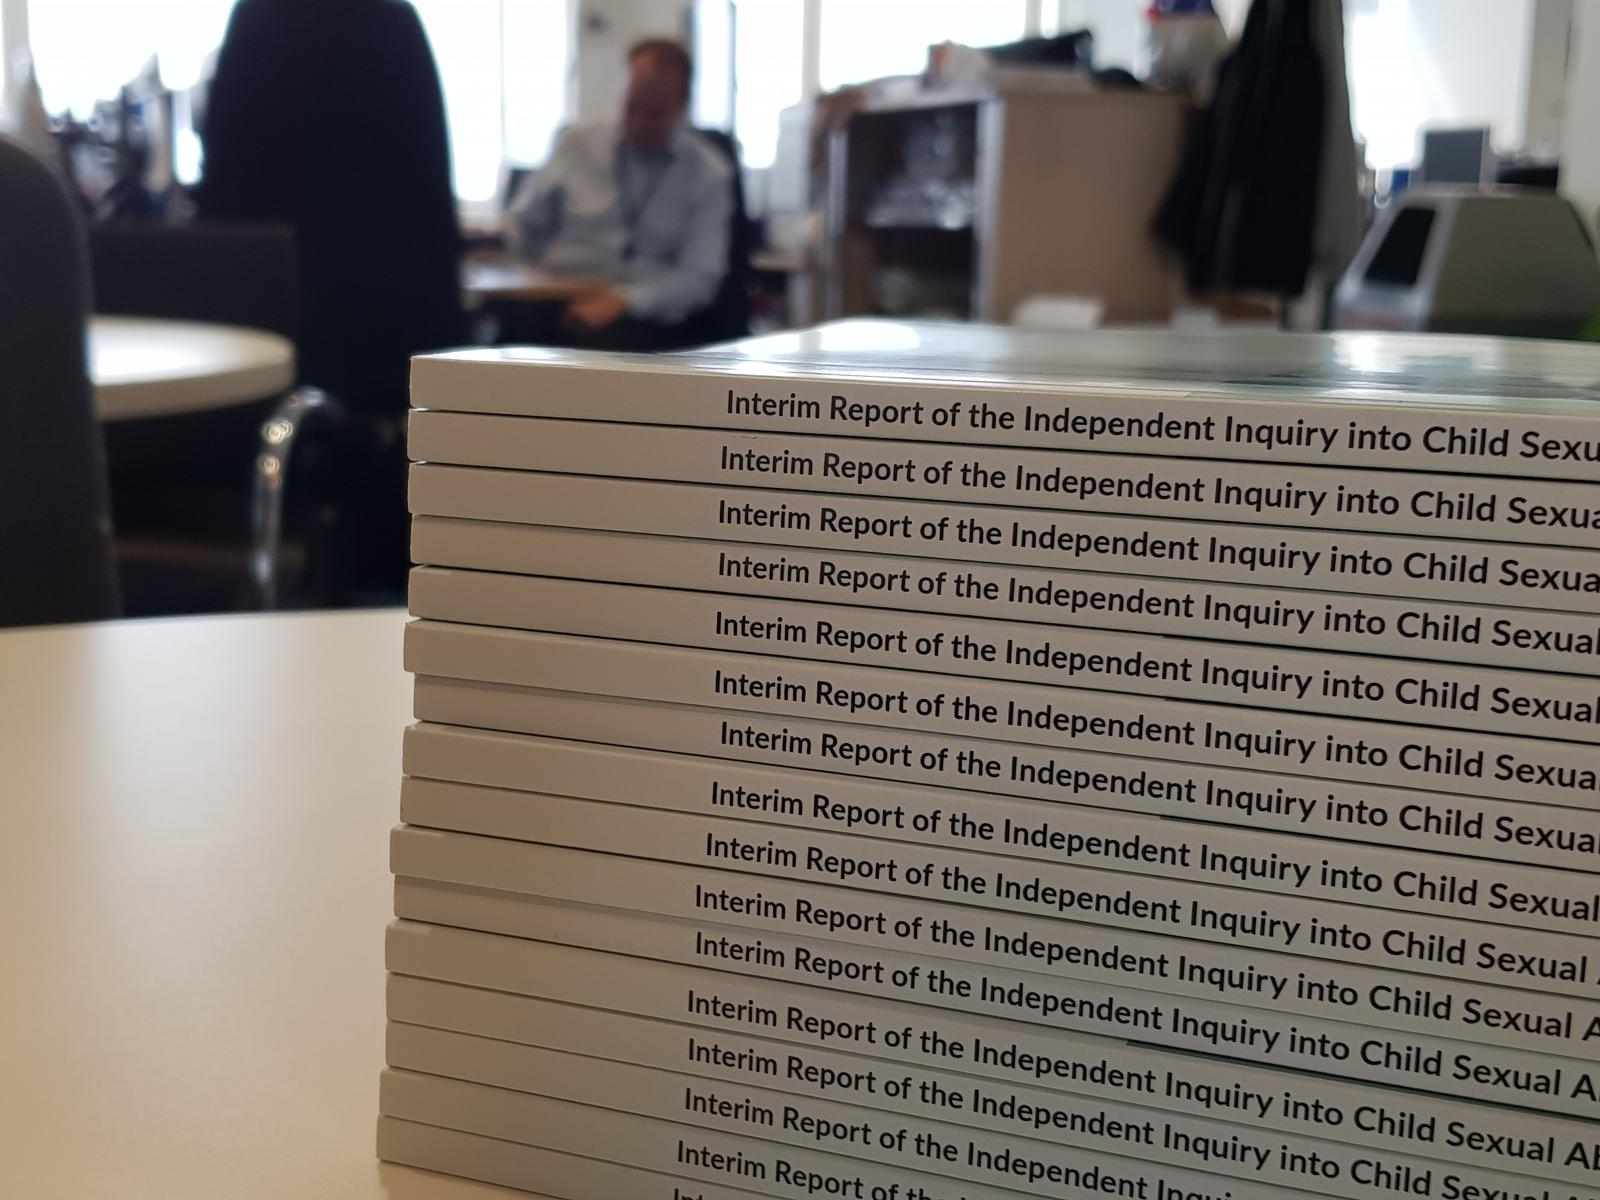 Interim Report of the Independent Inquiry into Child Sexual Abuse cover - image 2